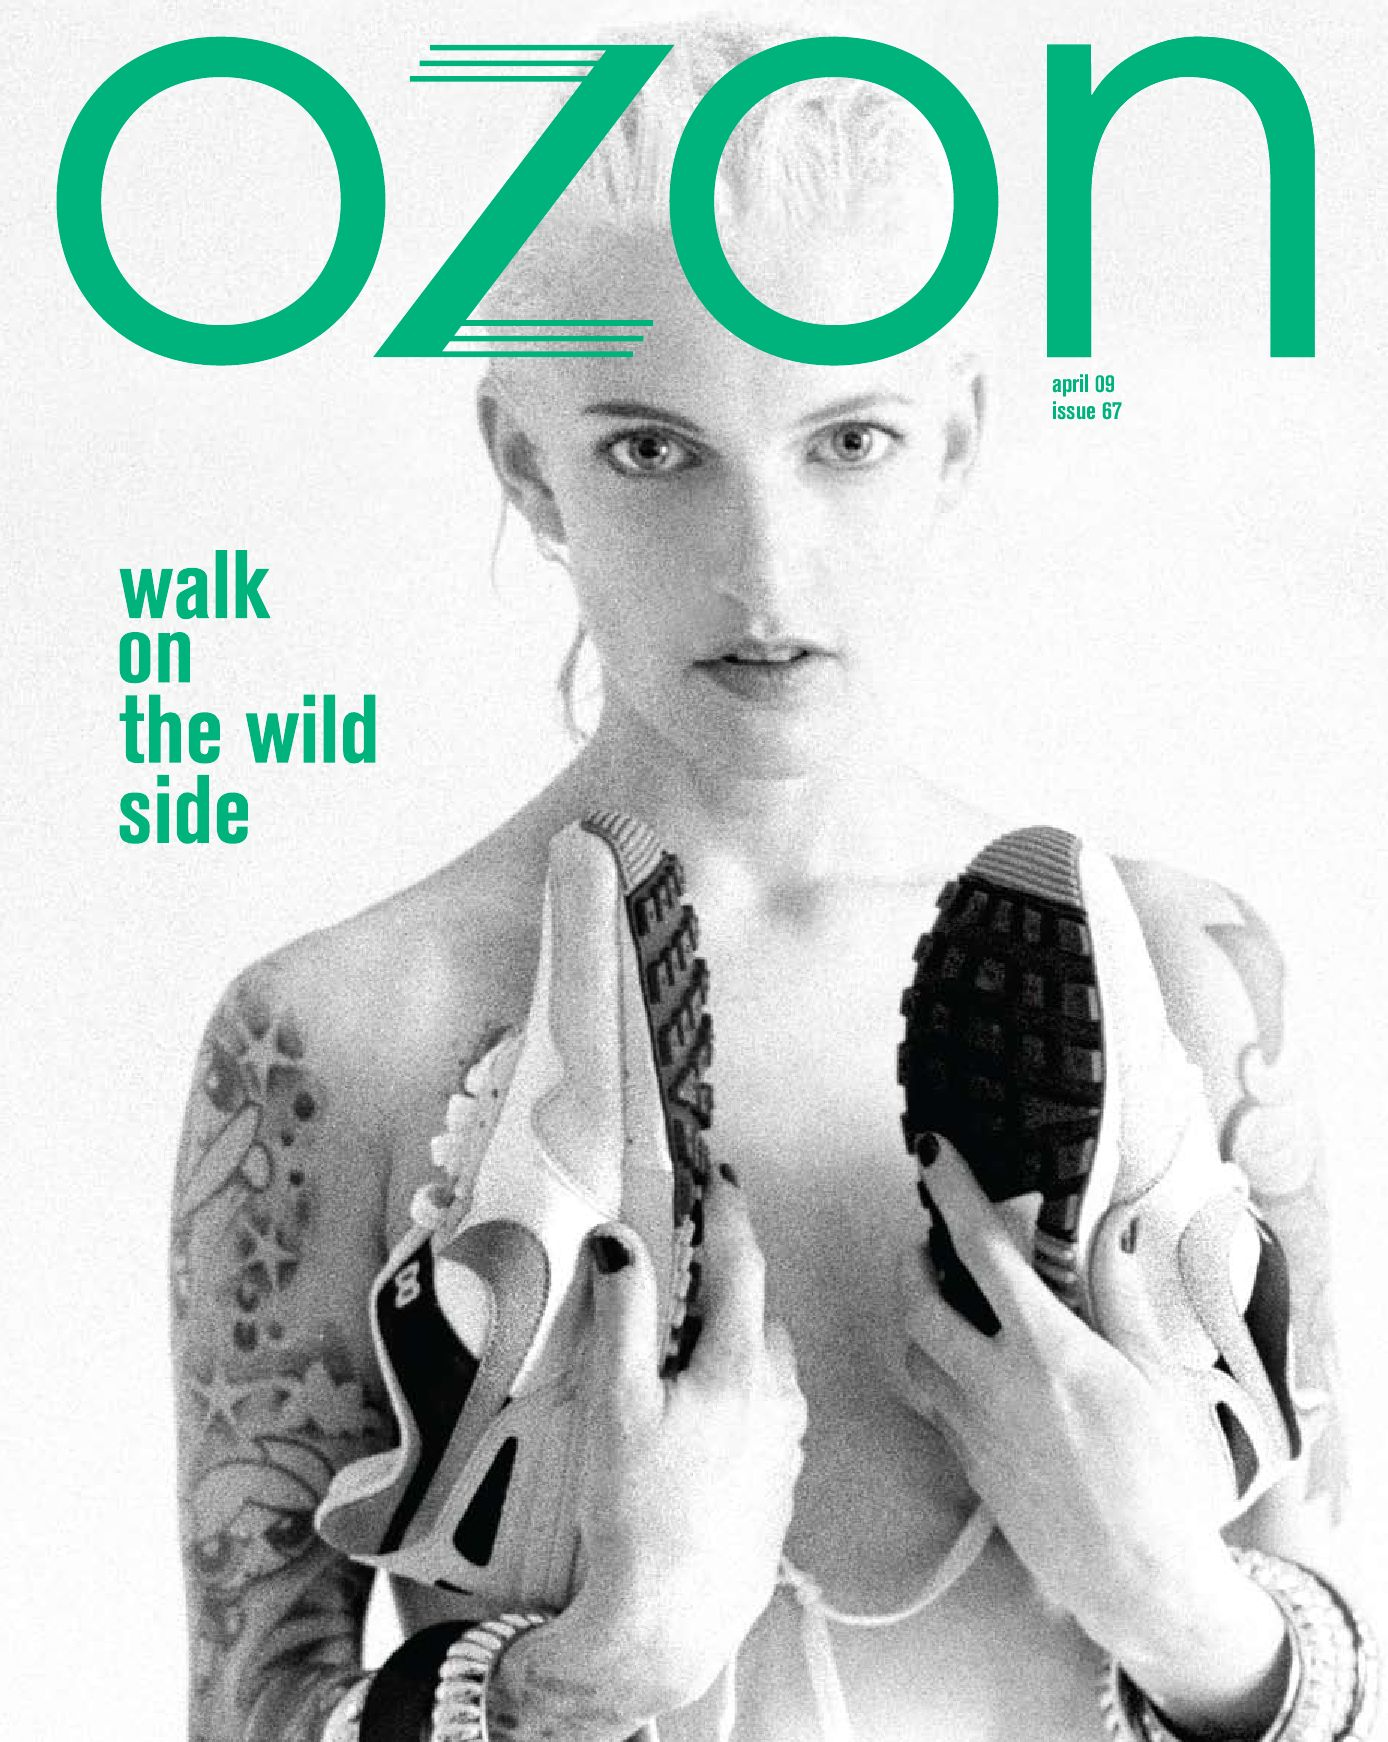 b97141ee6f5 ozon april issue | walk on the wild side by OZON Magazine - issuu